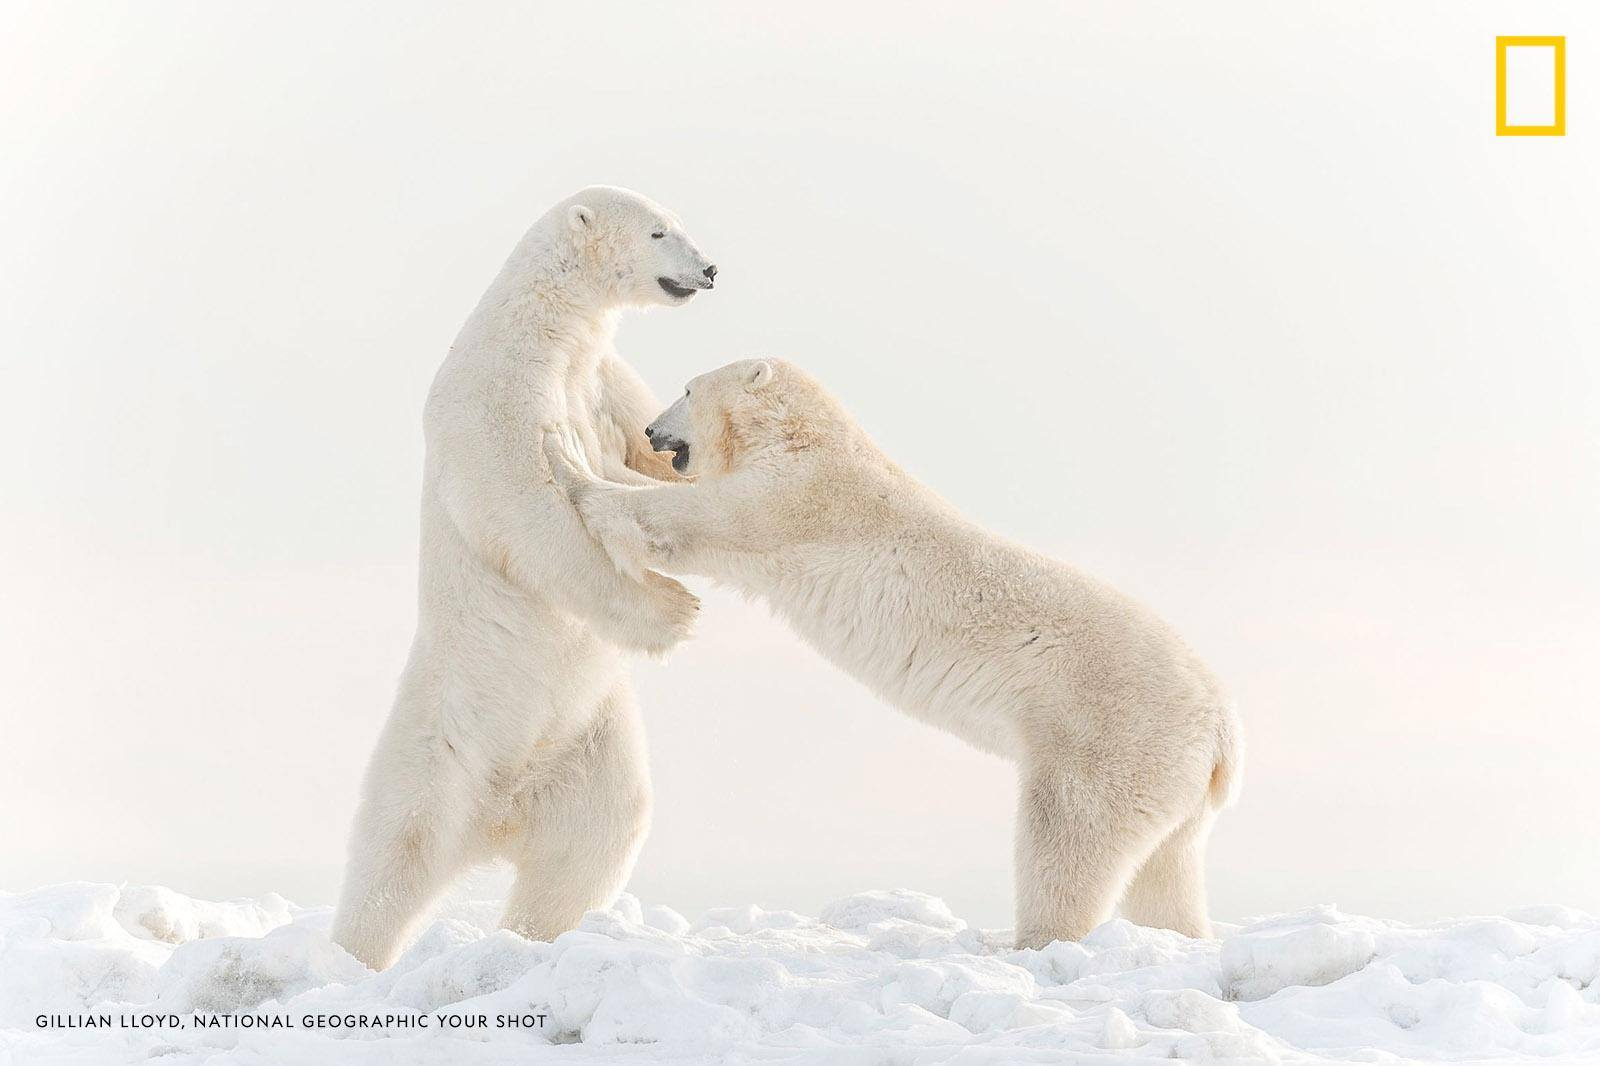 Help us caption this image by Your Shot photographer Gillian Lloyd: https://on.natgeo.com/2J8bL3z